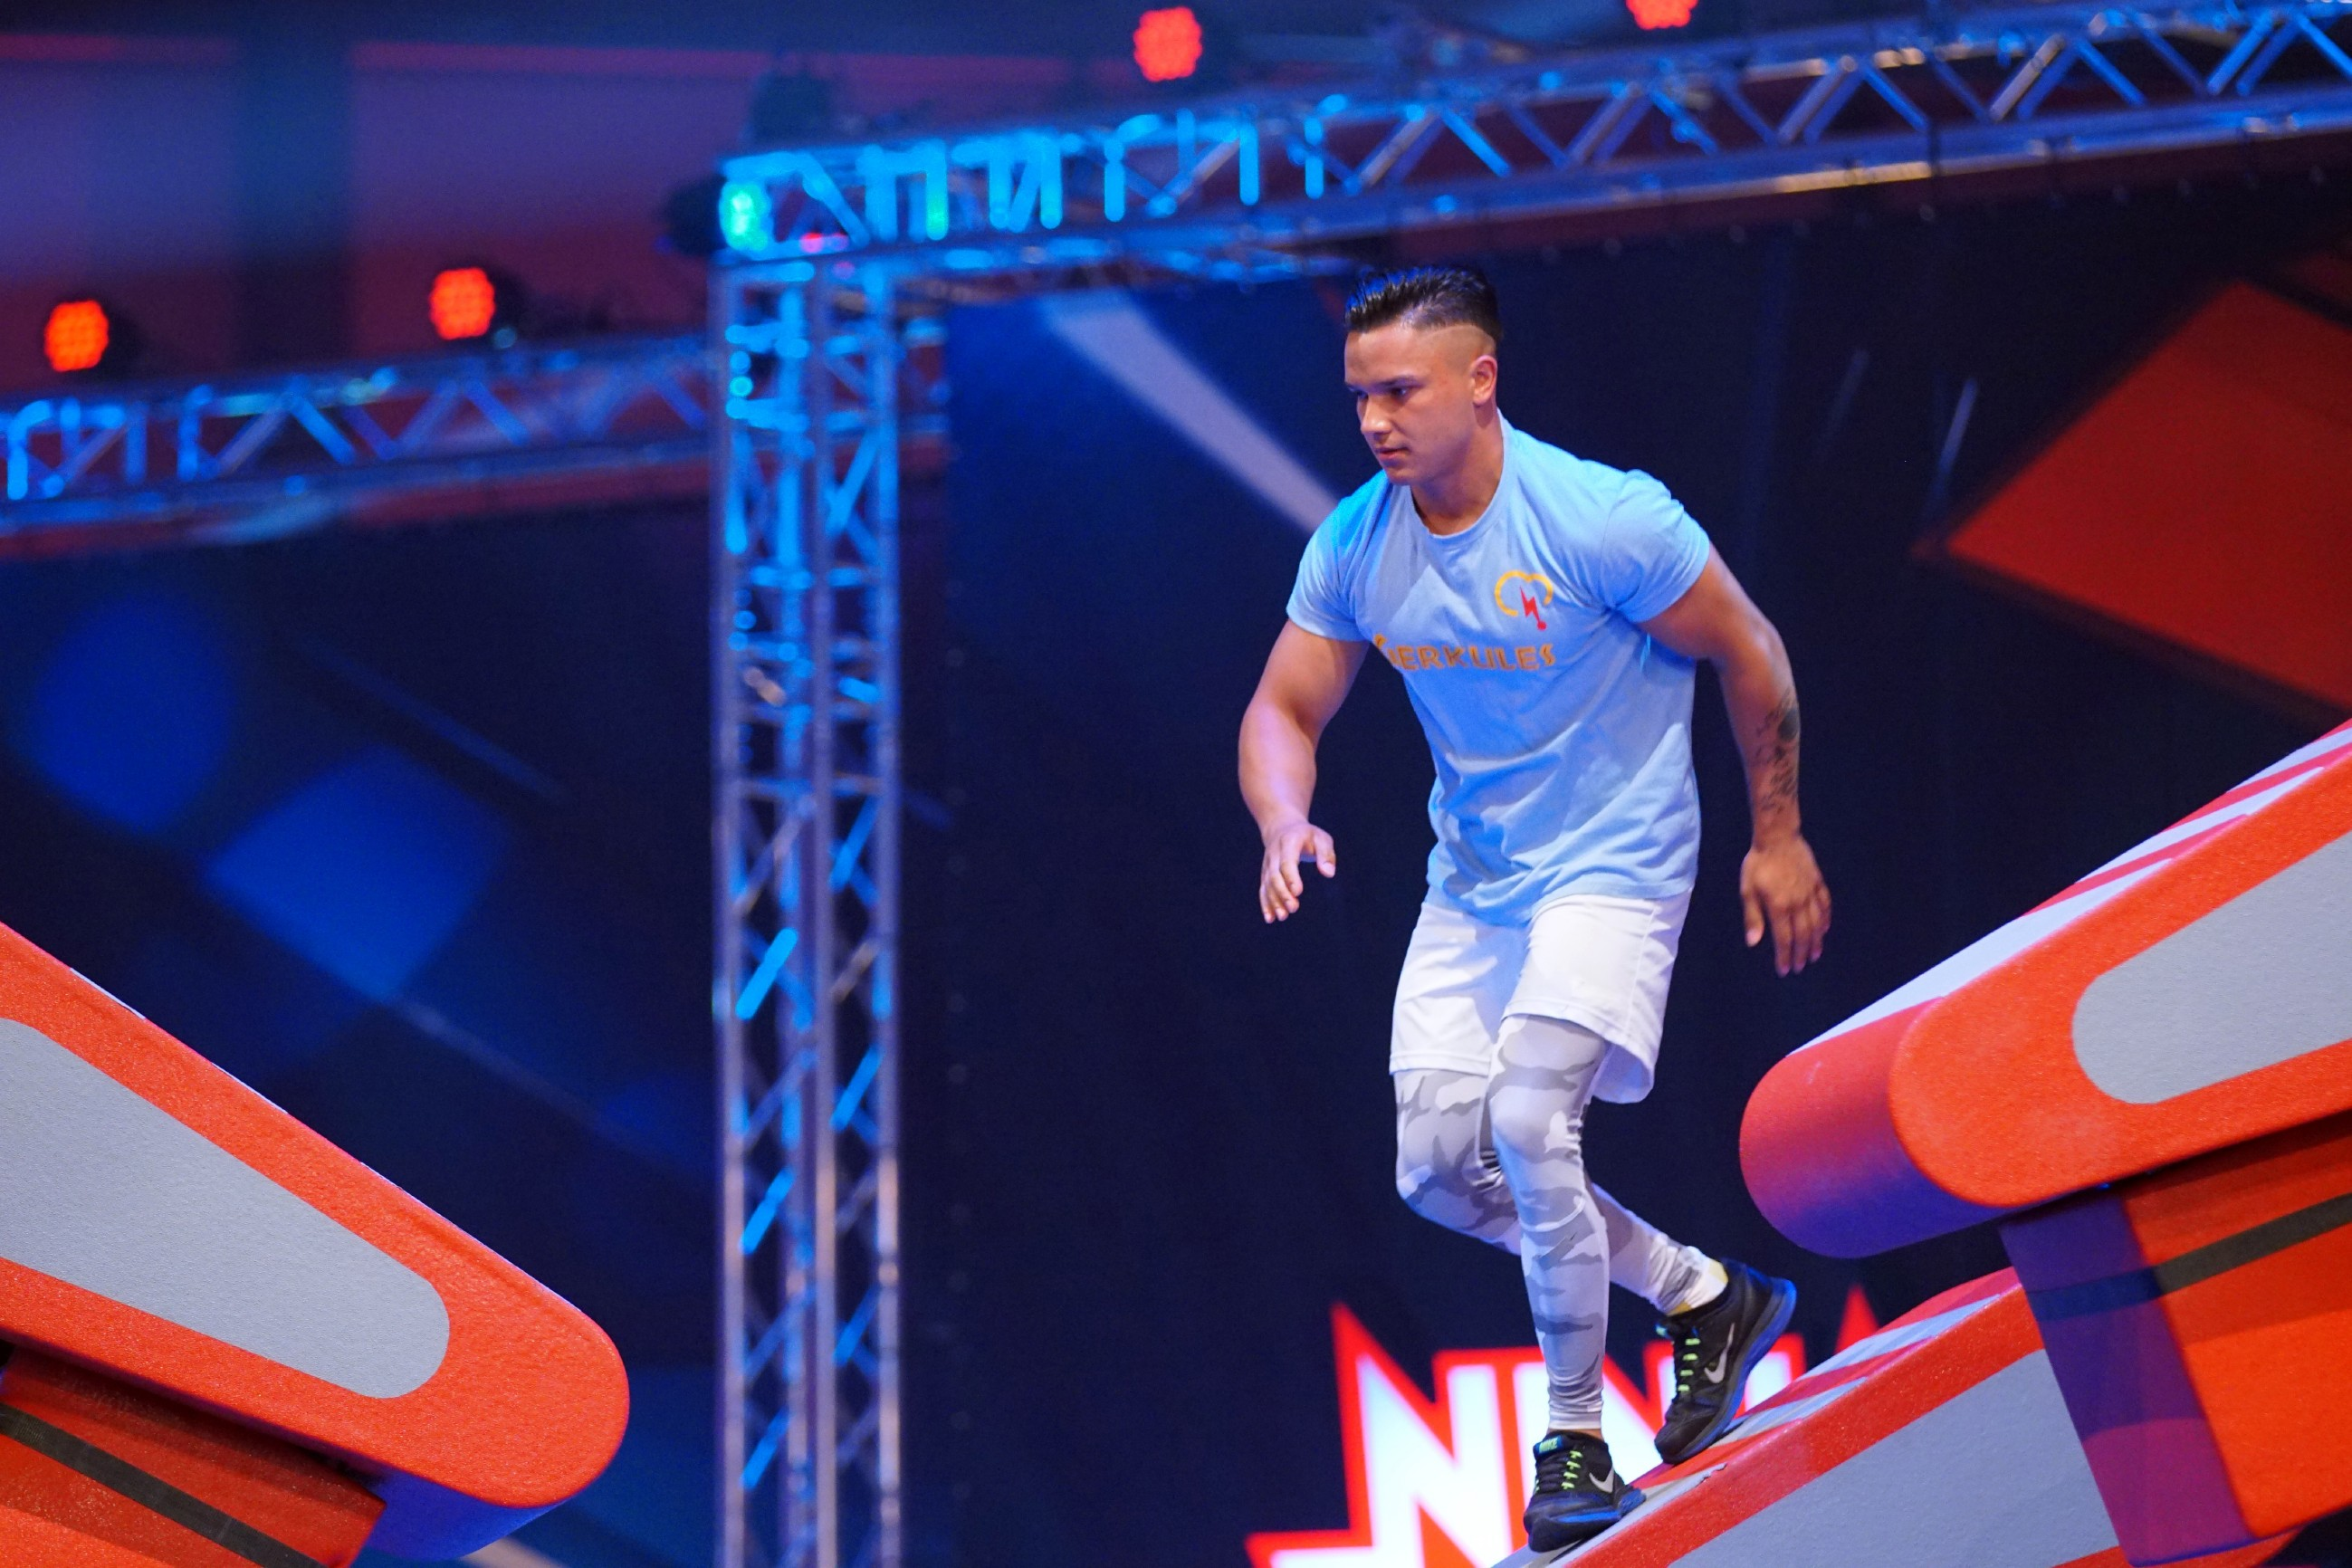 On October 5, , it was announced by USA Network that the show would be retitled American Ninja Warrior: Ninja vs Ninja starting with the show's third season, which premiered on March 1, Genre: Sports competition.